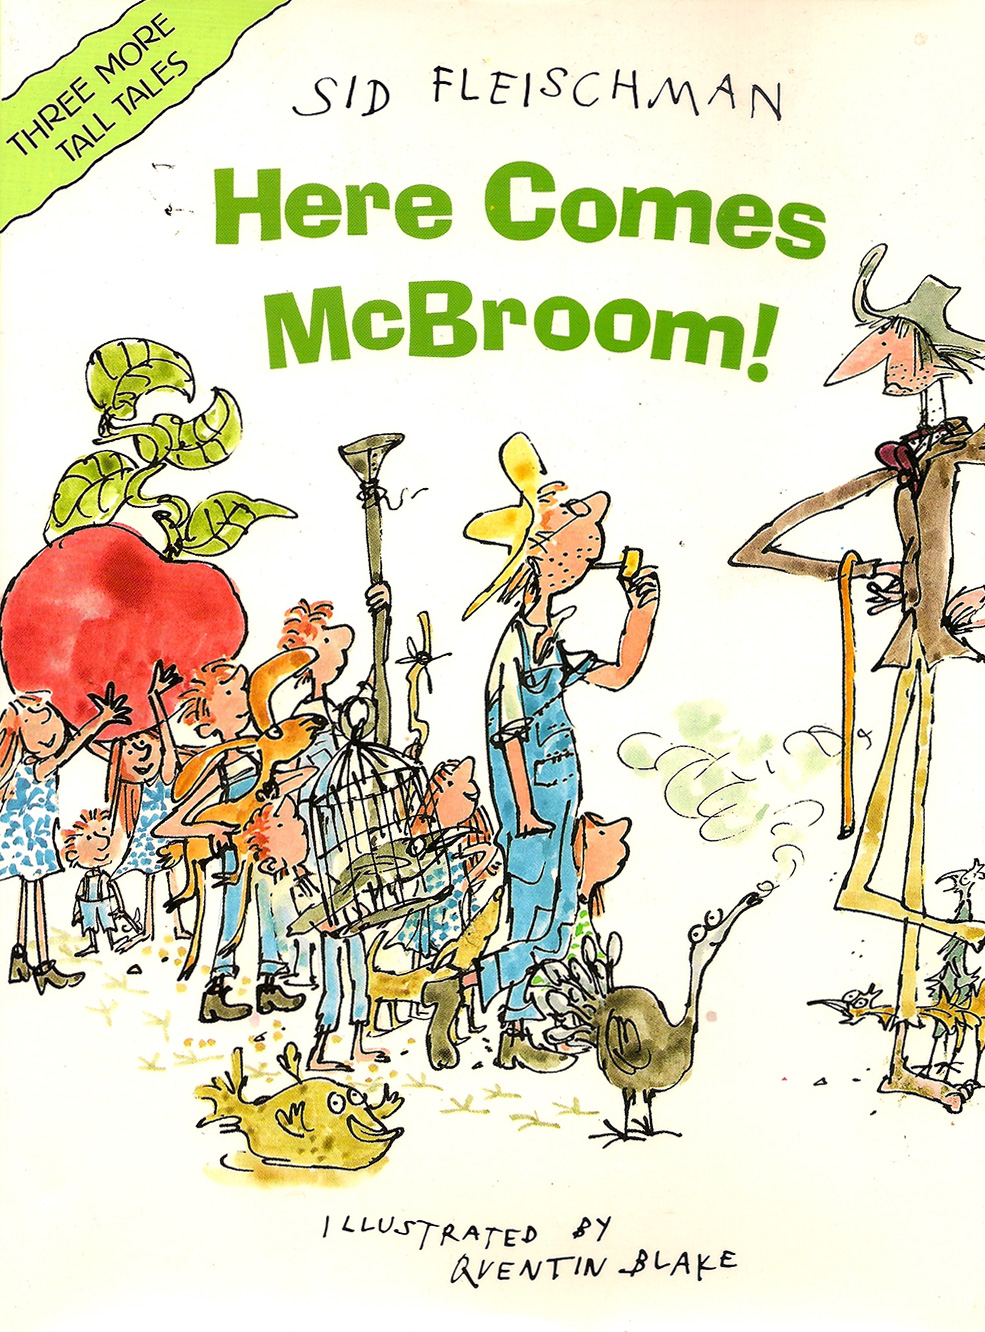 Here Comes McBroom - Three more tall tales: McBroom the Rainmaker, McBroom's Ghost, McBroom's Zoo.